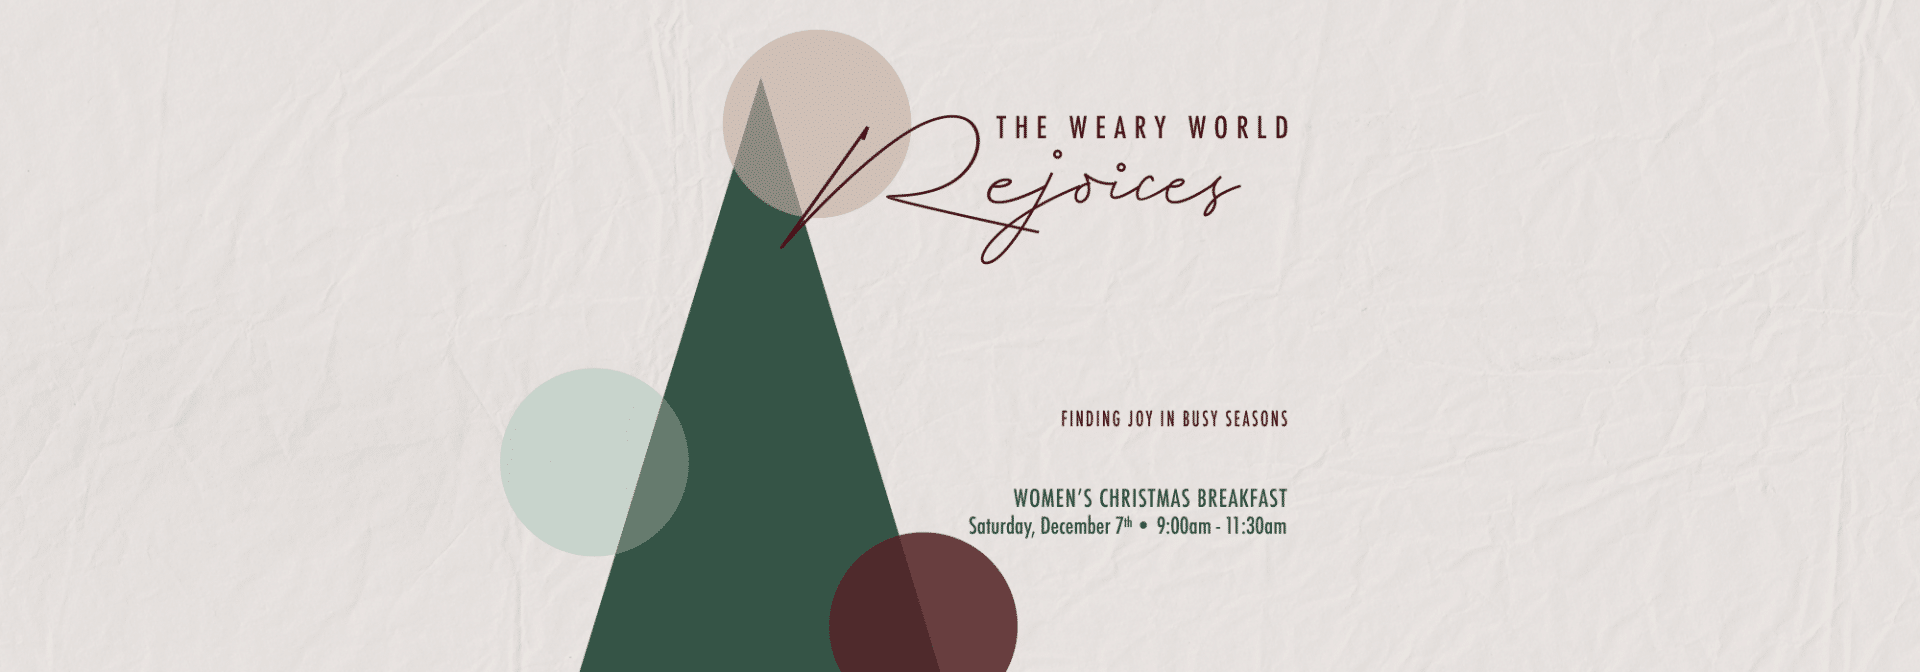 A Weary World Rejoices